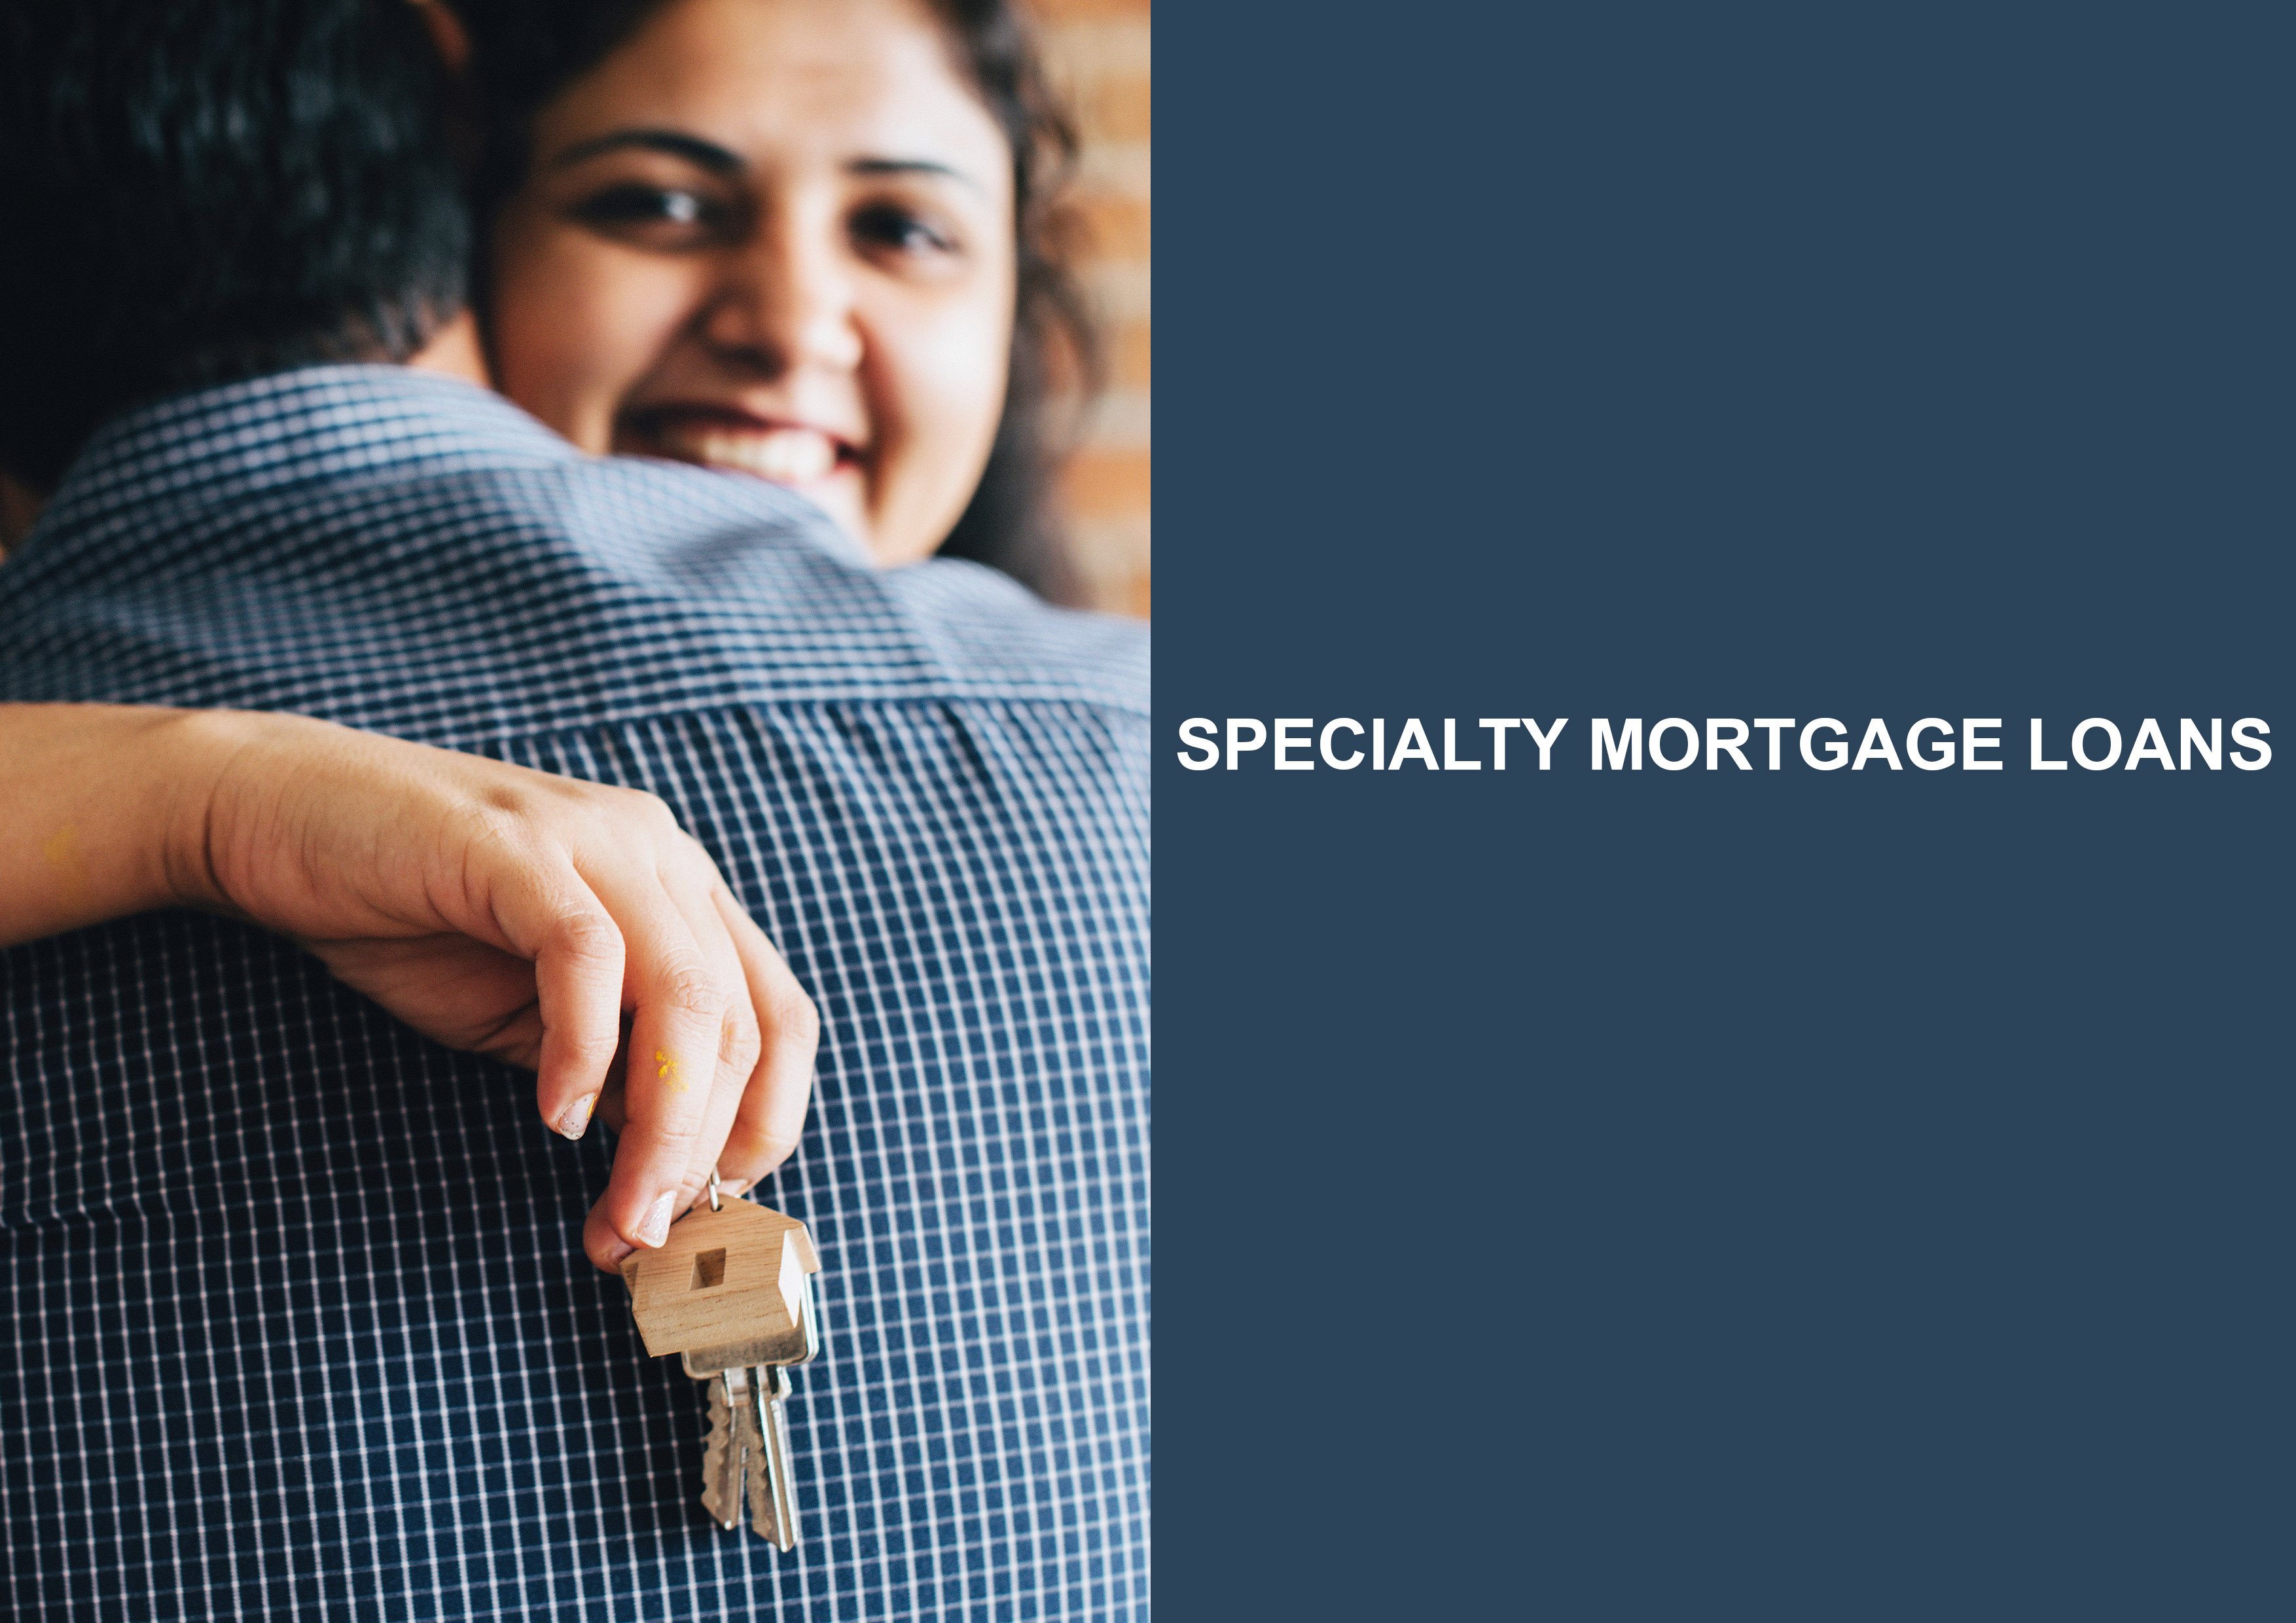 Speciality Mortgage Loans